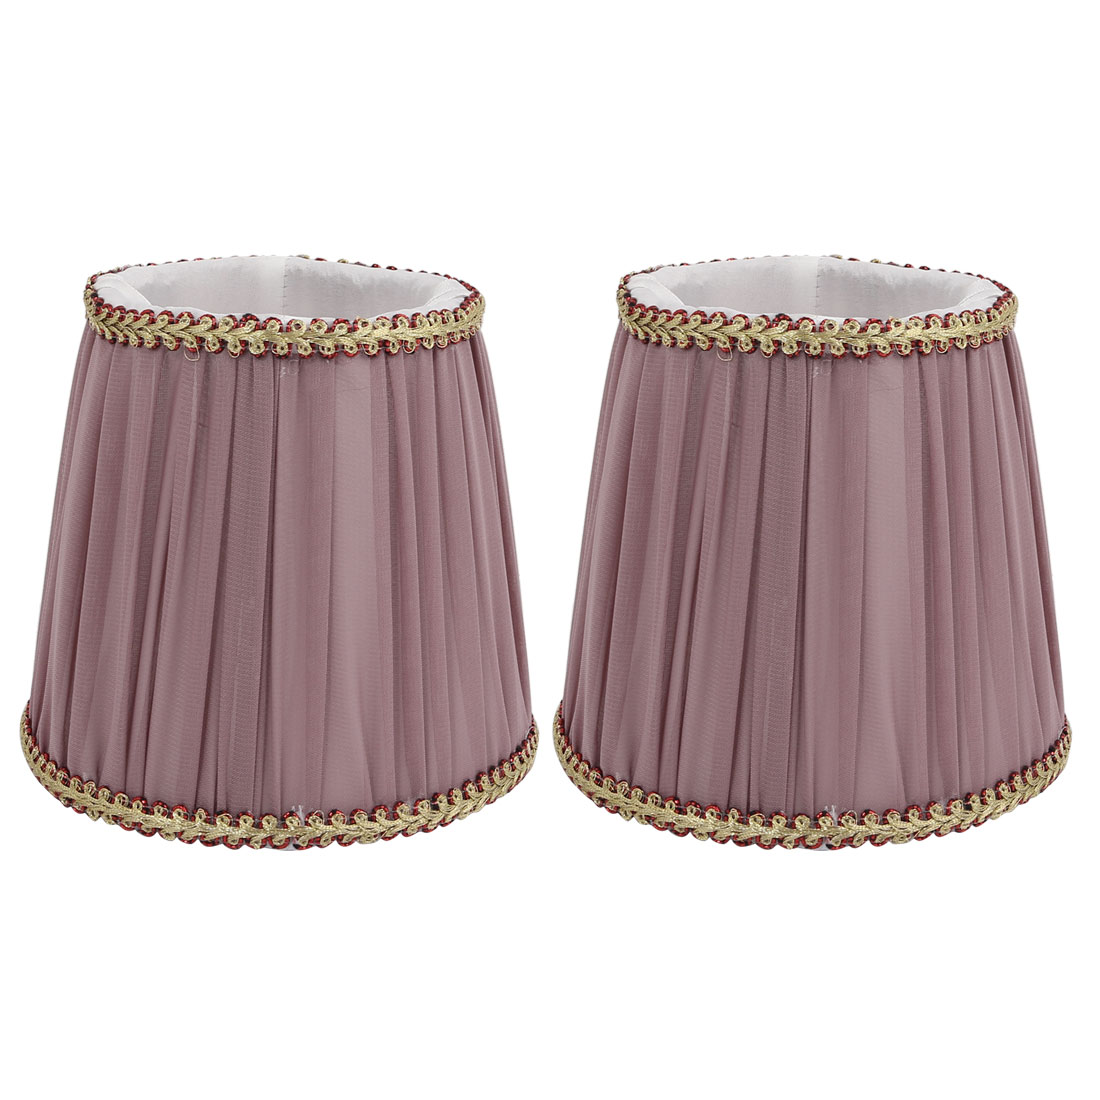 2pcs DropLight Wall Shade Chandelier Clip-On Lampshade Purple Fabric-Covered by Unique-Bargains